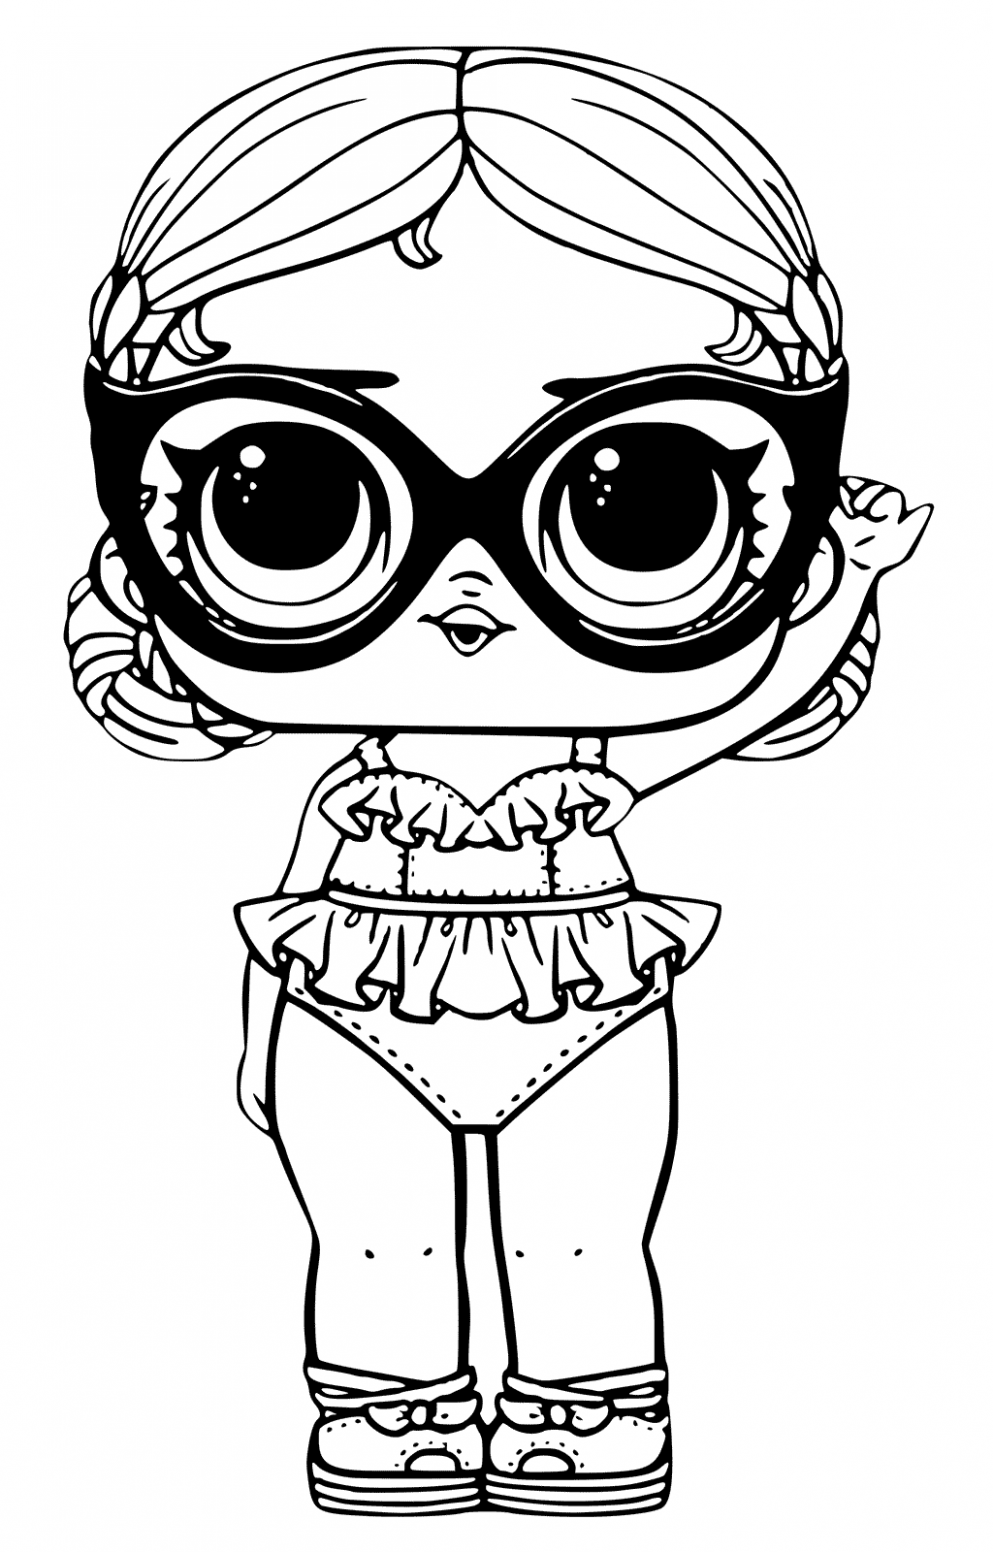 LOL Surprise Doll Coloring Pages Vacay Babay | lol dolls | Pinterest ..